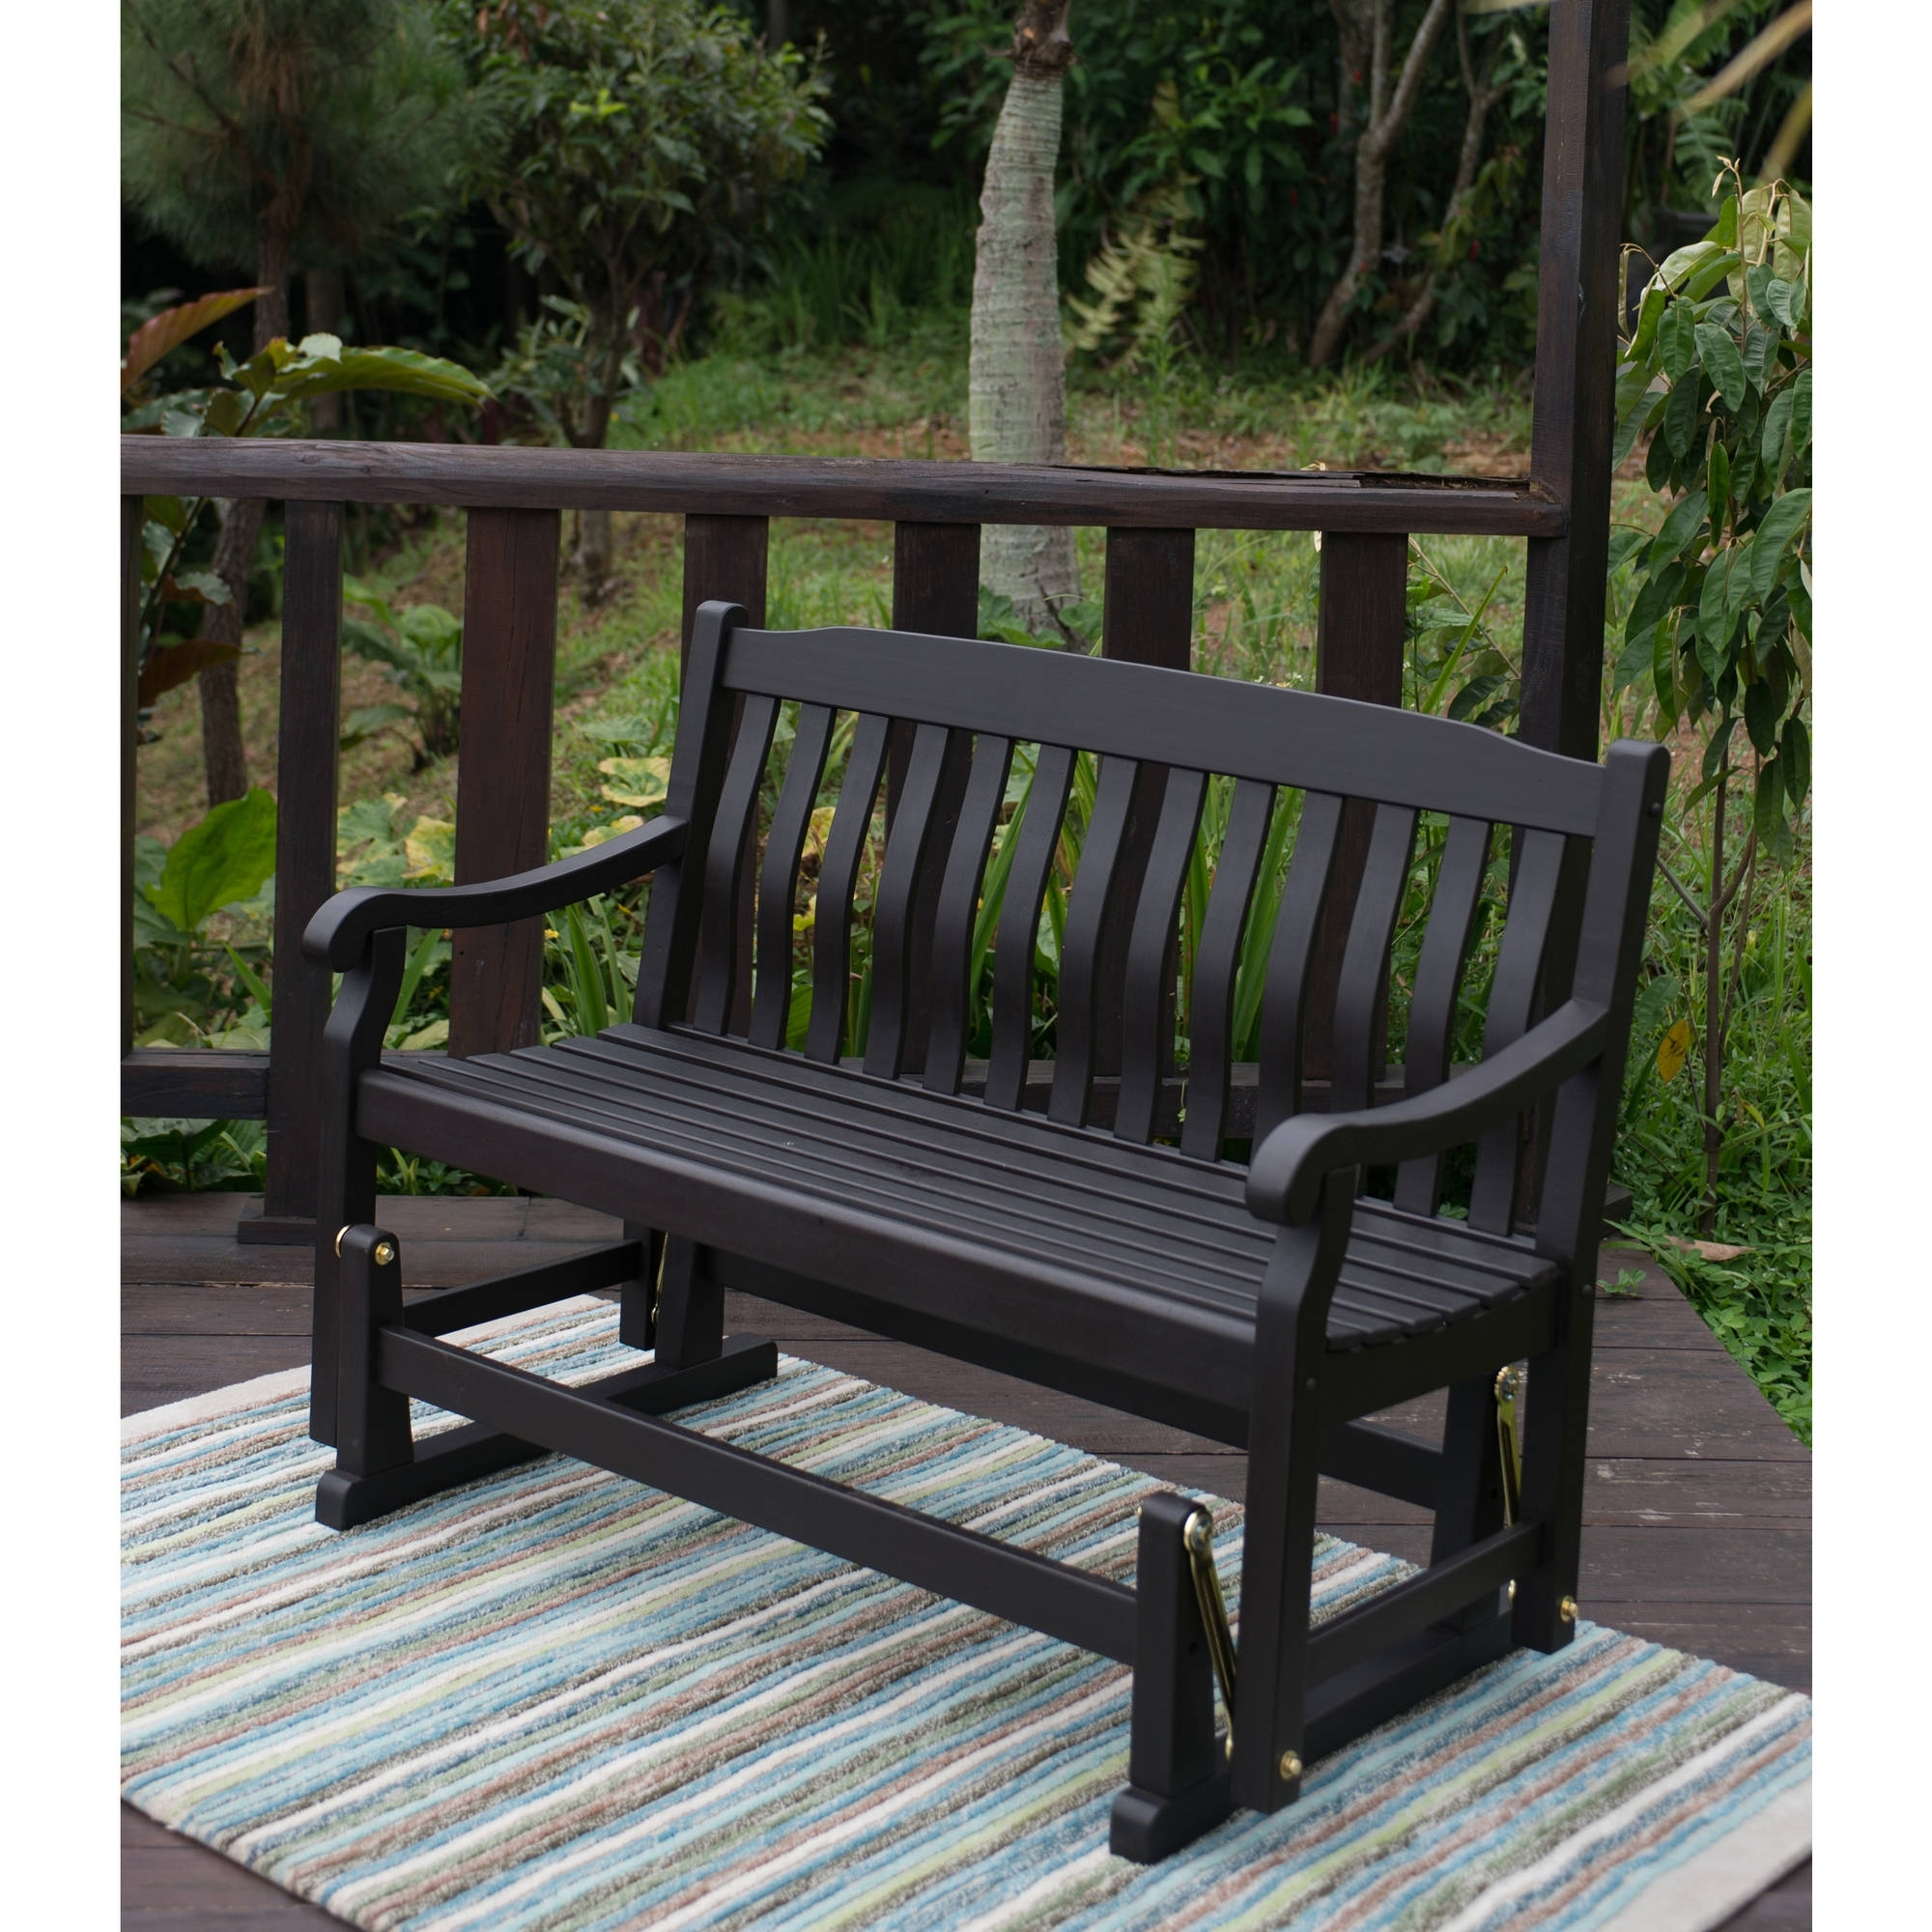 Latest Better Homes & Gardens Delahey Outdoor Glider Bench, Dark Brown For Patio Furniture Rocking Benches (View 5 of 15)